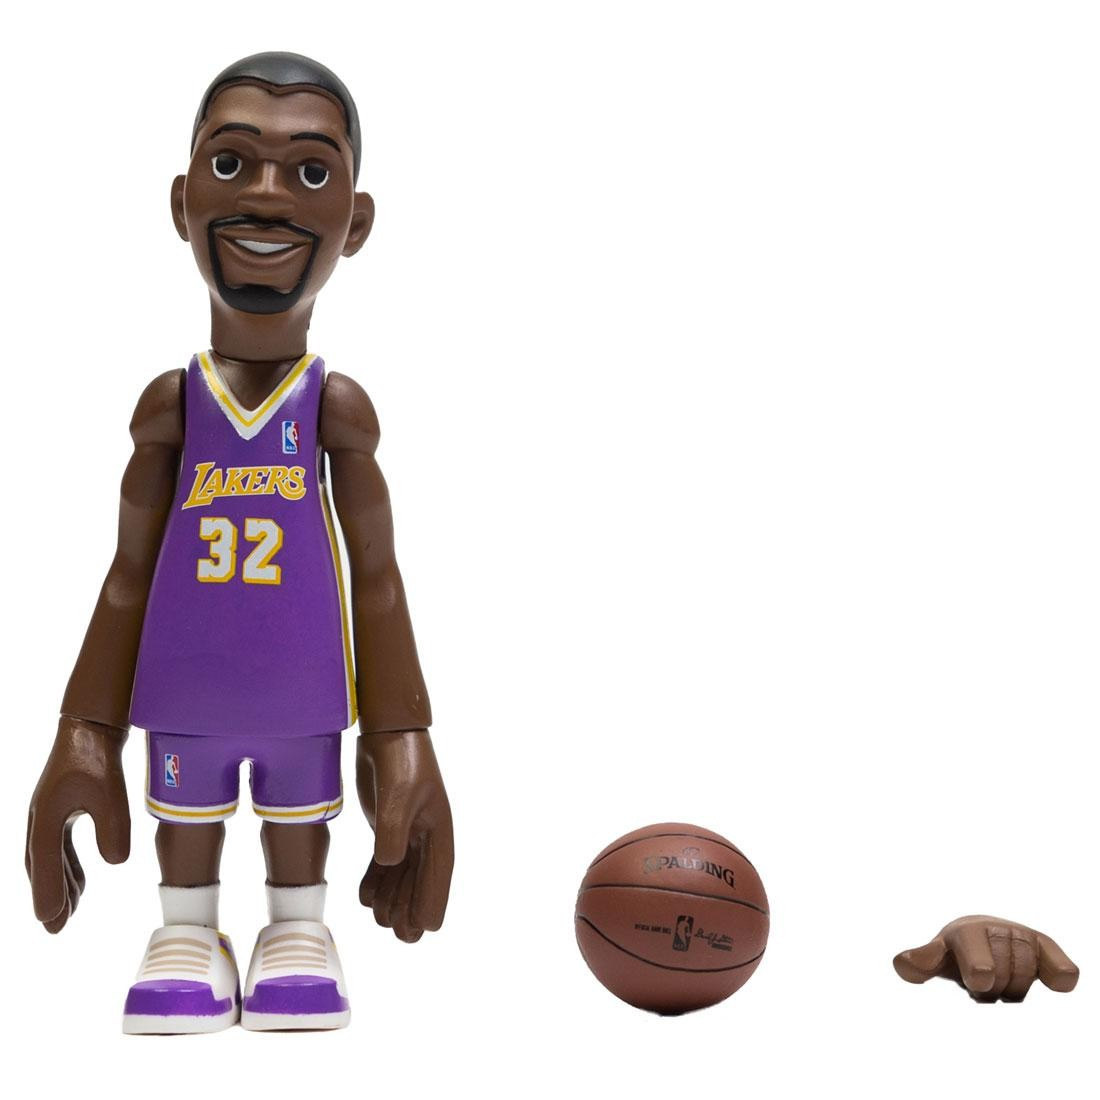 MINDstyle x Coolrain NBA Legends LA Lakers Magic Johnson Figure - BAIT Exclusive (purple)